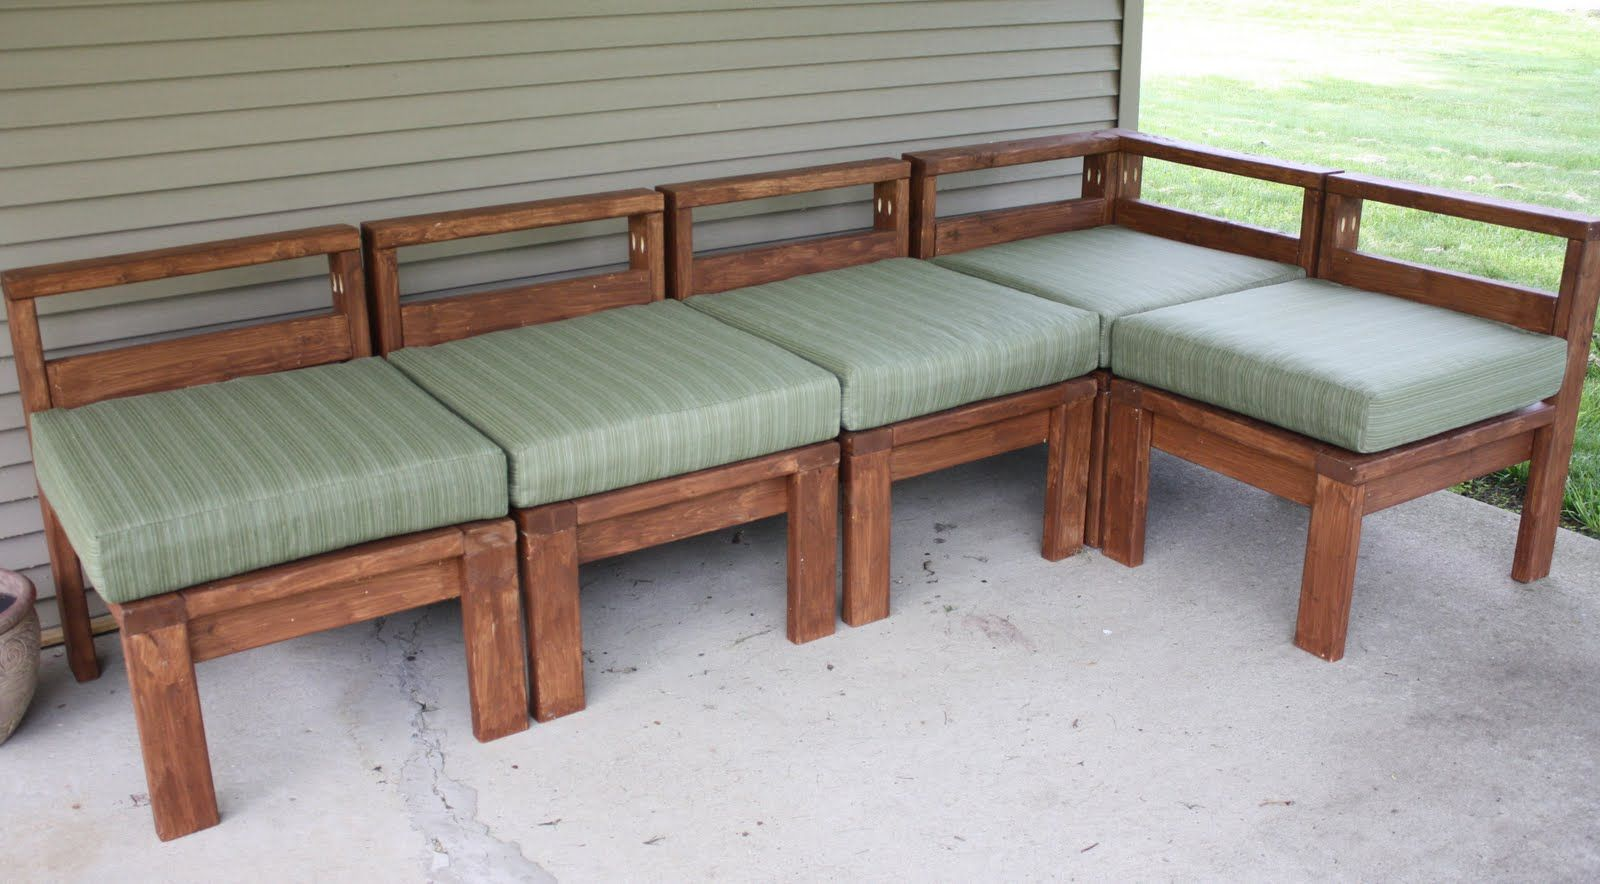 2x4 furniture you can build do it yourself outdoor furniture diy 2x4 furniture you can build do it yourself outdoor furniture solutioingenieria Choice Image